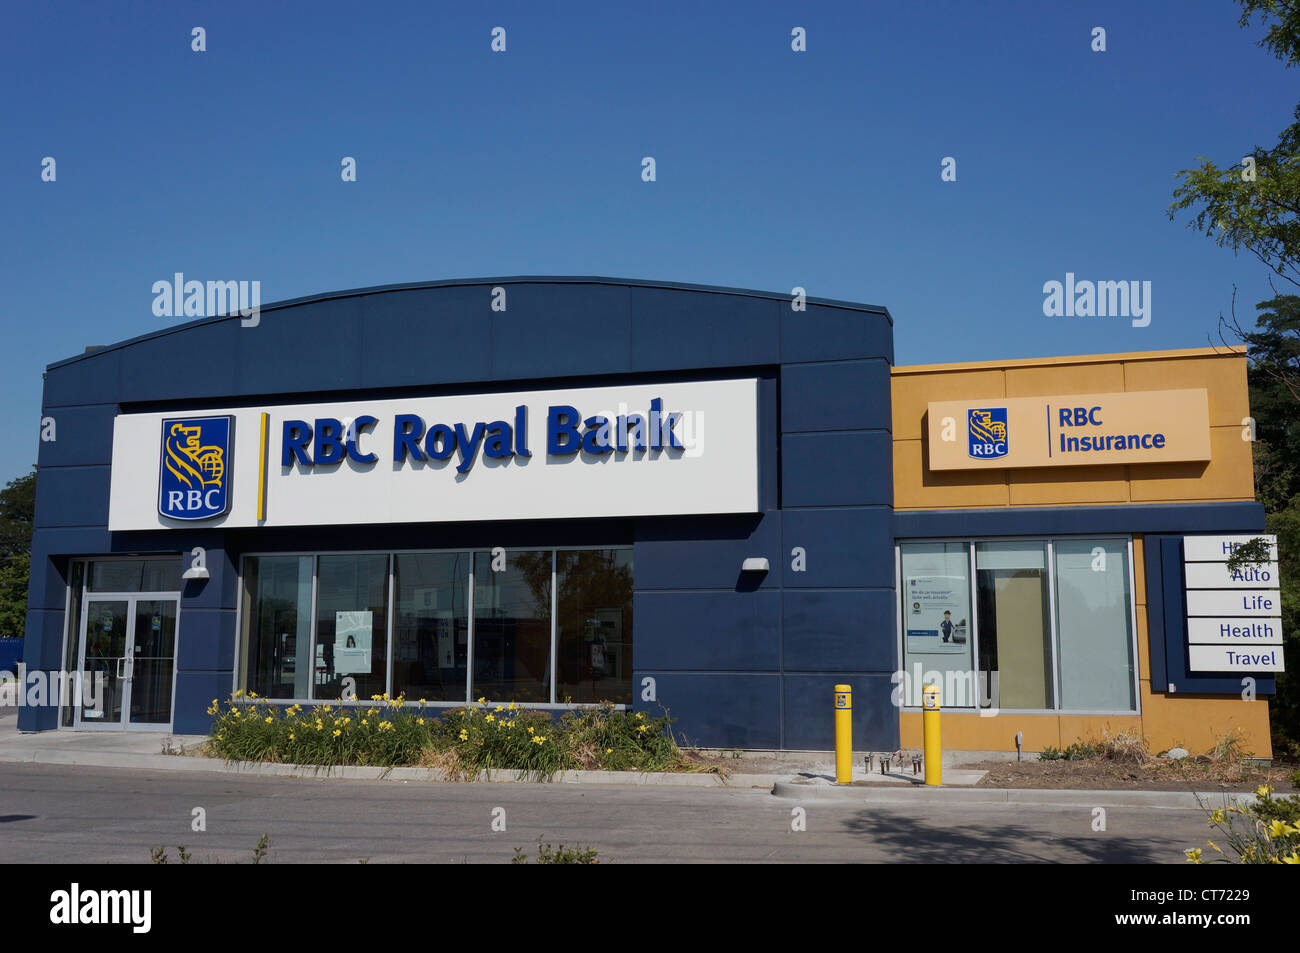 Lokale Niederlassung Royal Bank of Canada Stockbild